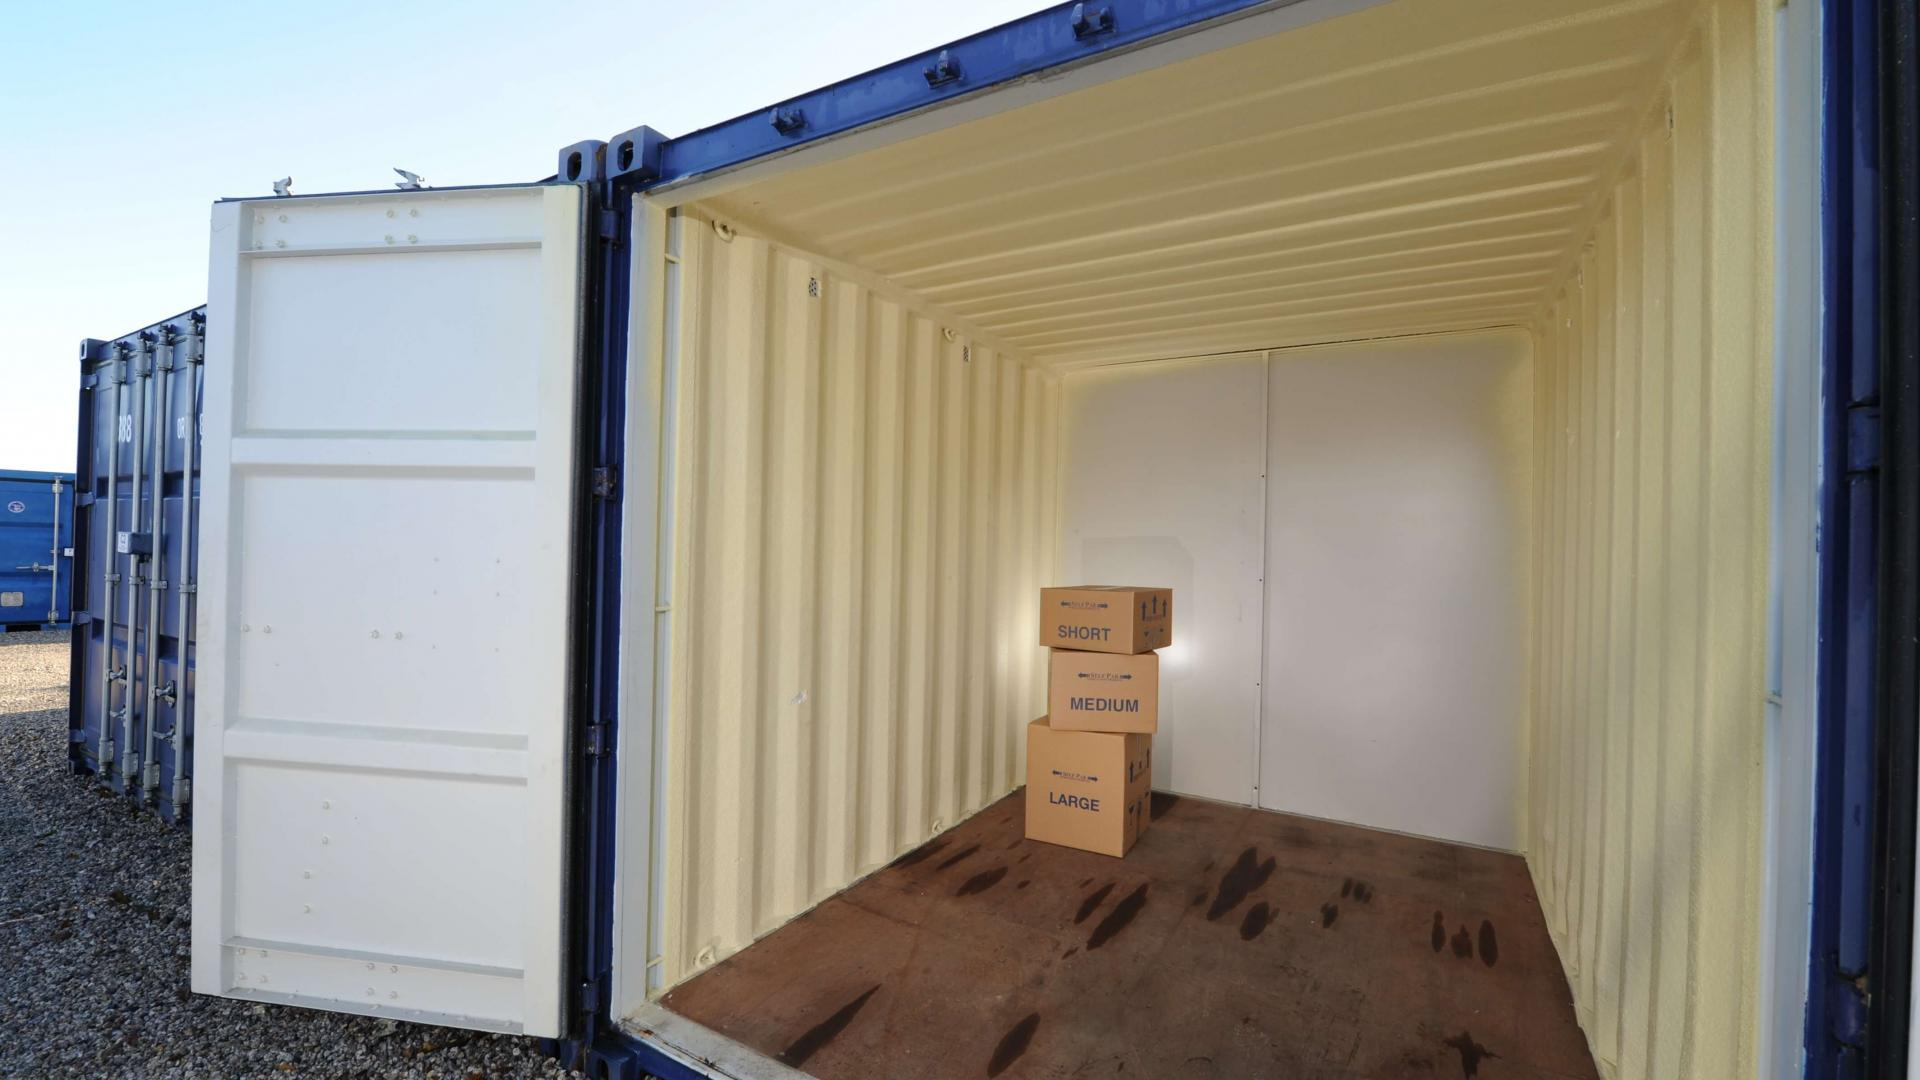 Storage container with packing boxes inside